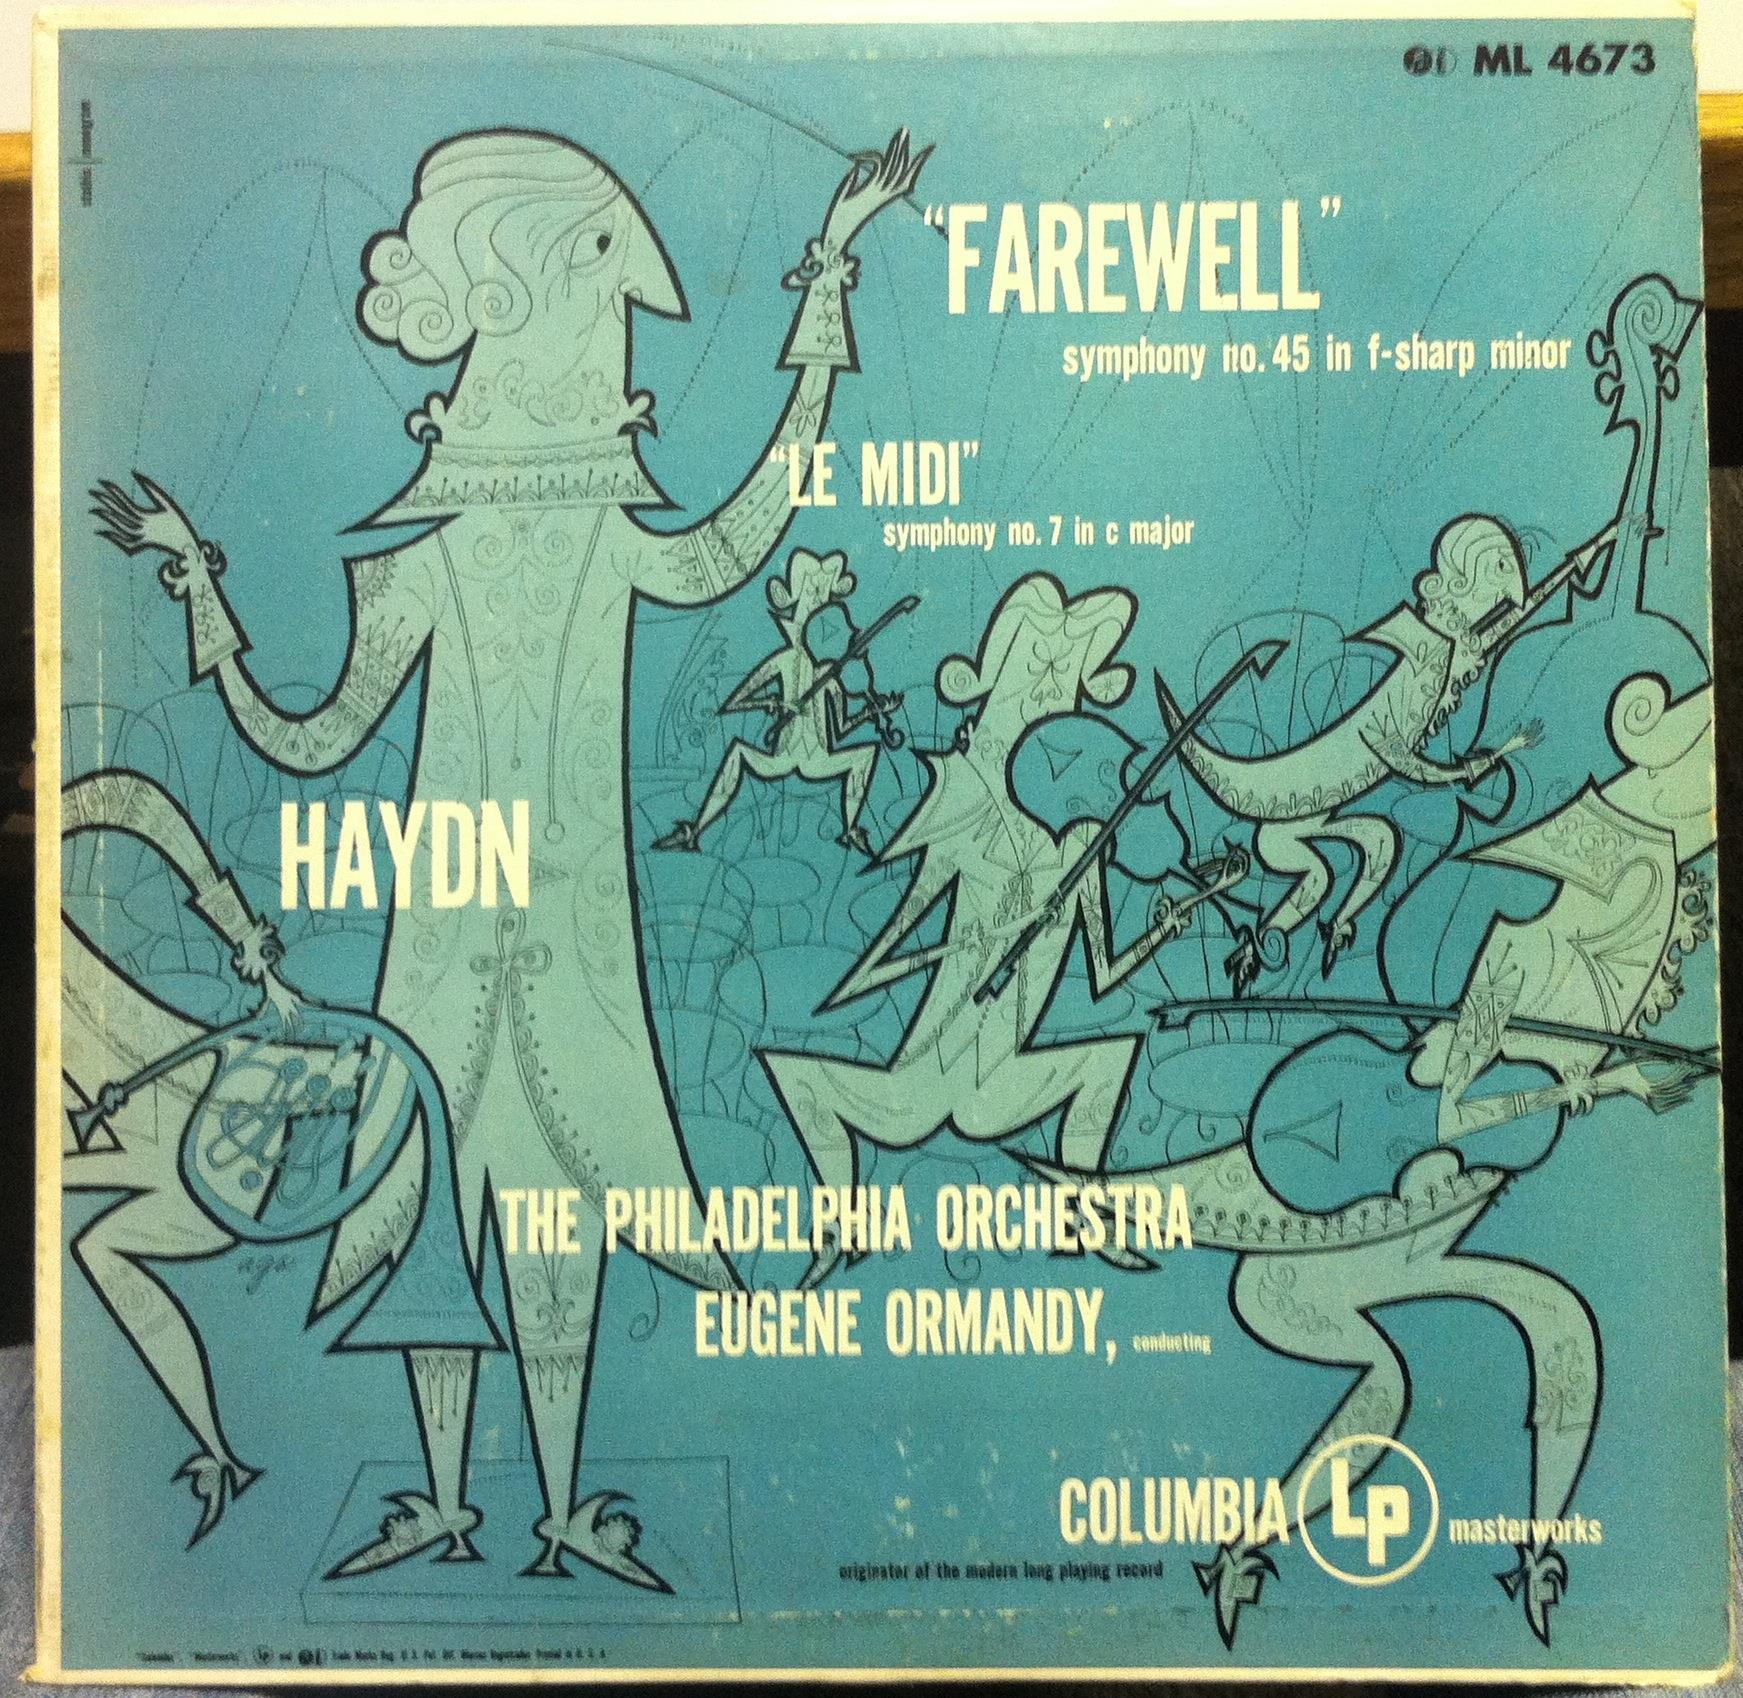 1953 Usa Ed1 Ormandy Haydn Farewell And Le Midi Lp Vg Ml 4673 Stathis Record